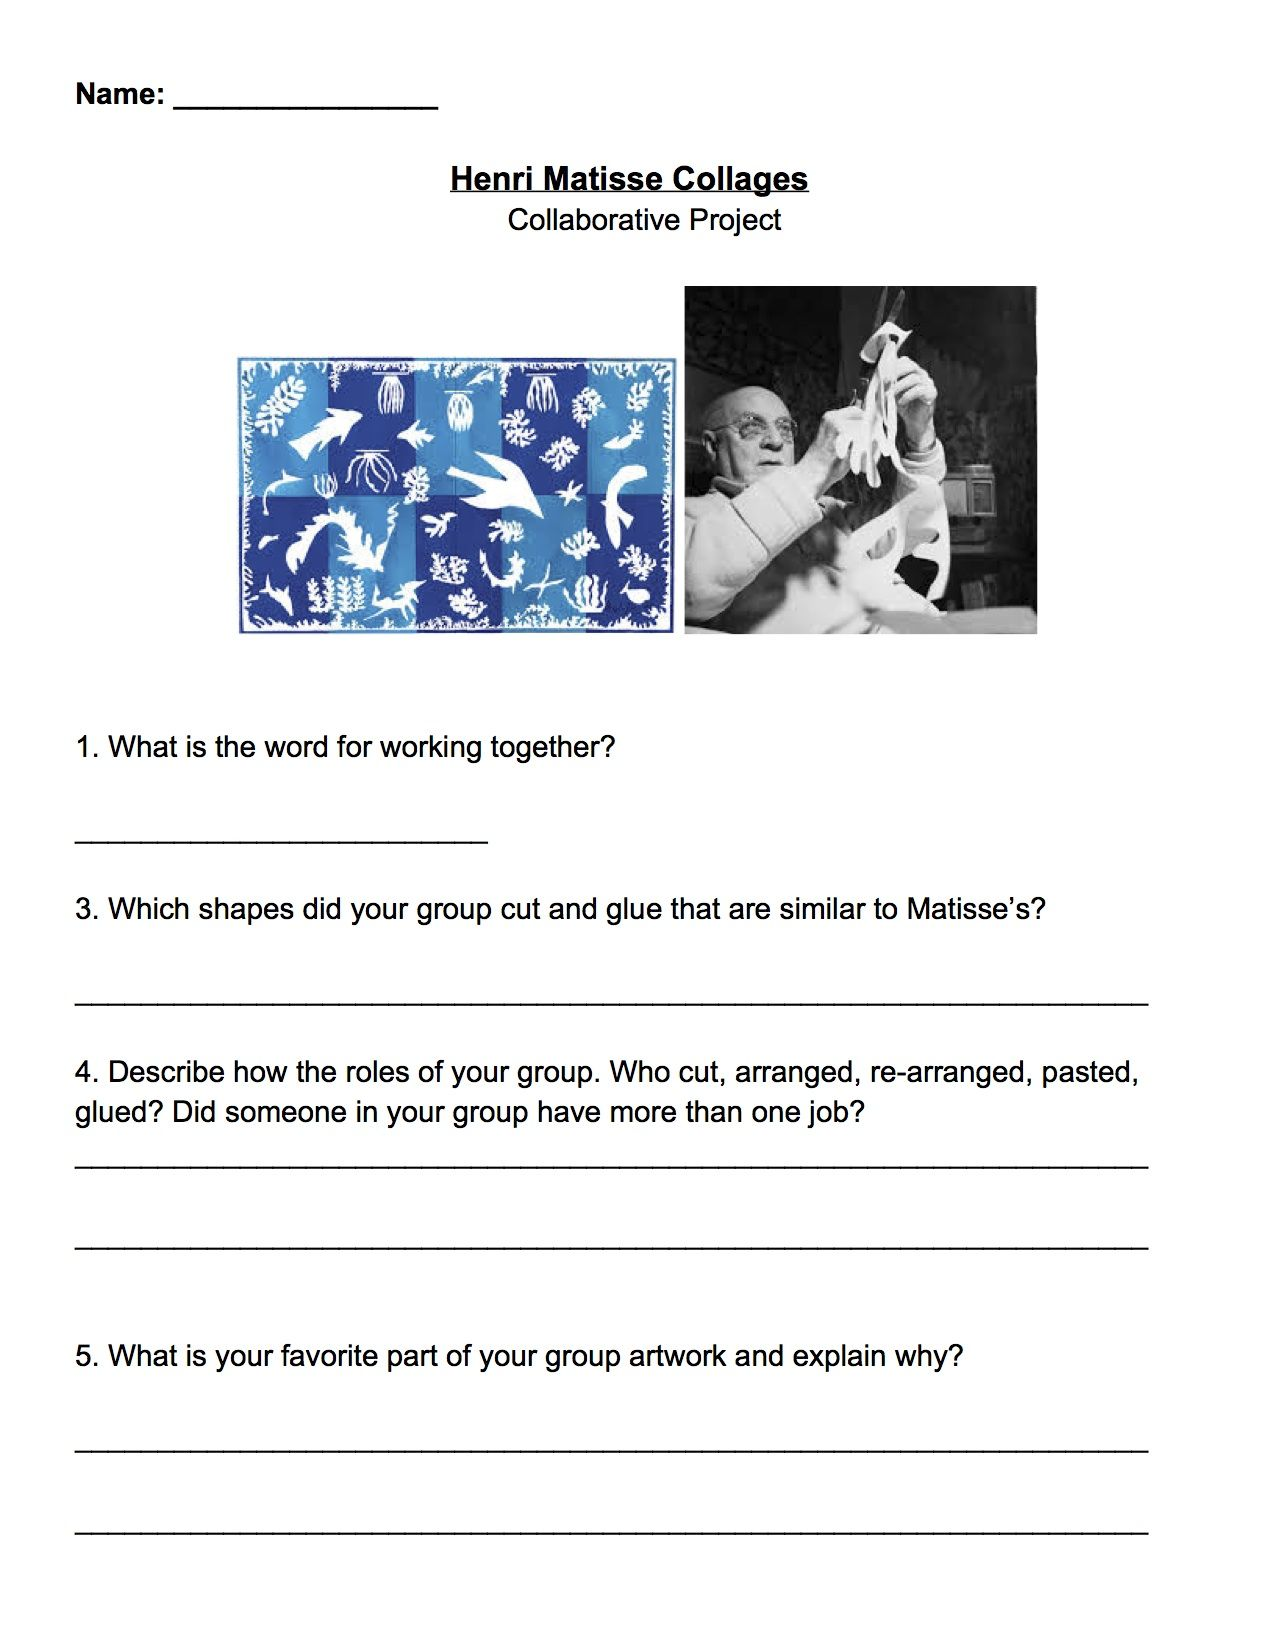 Matisse Collaborative Collage Review Worksheet Grade 4